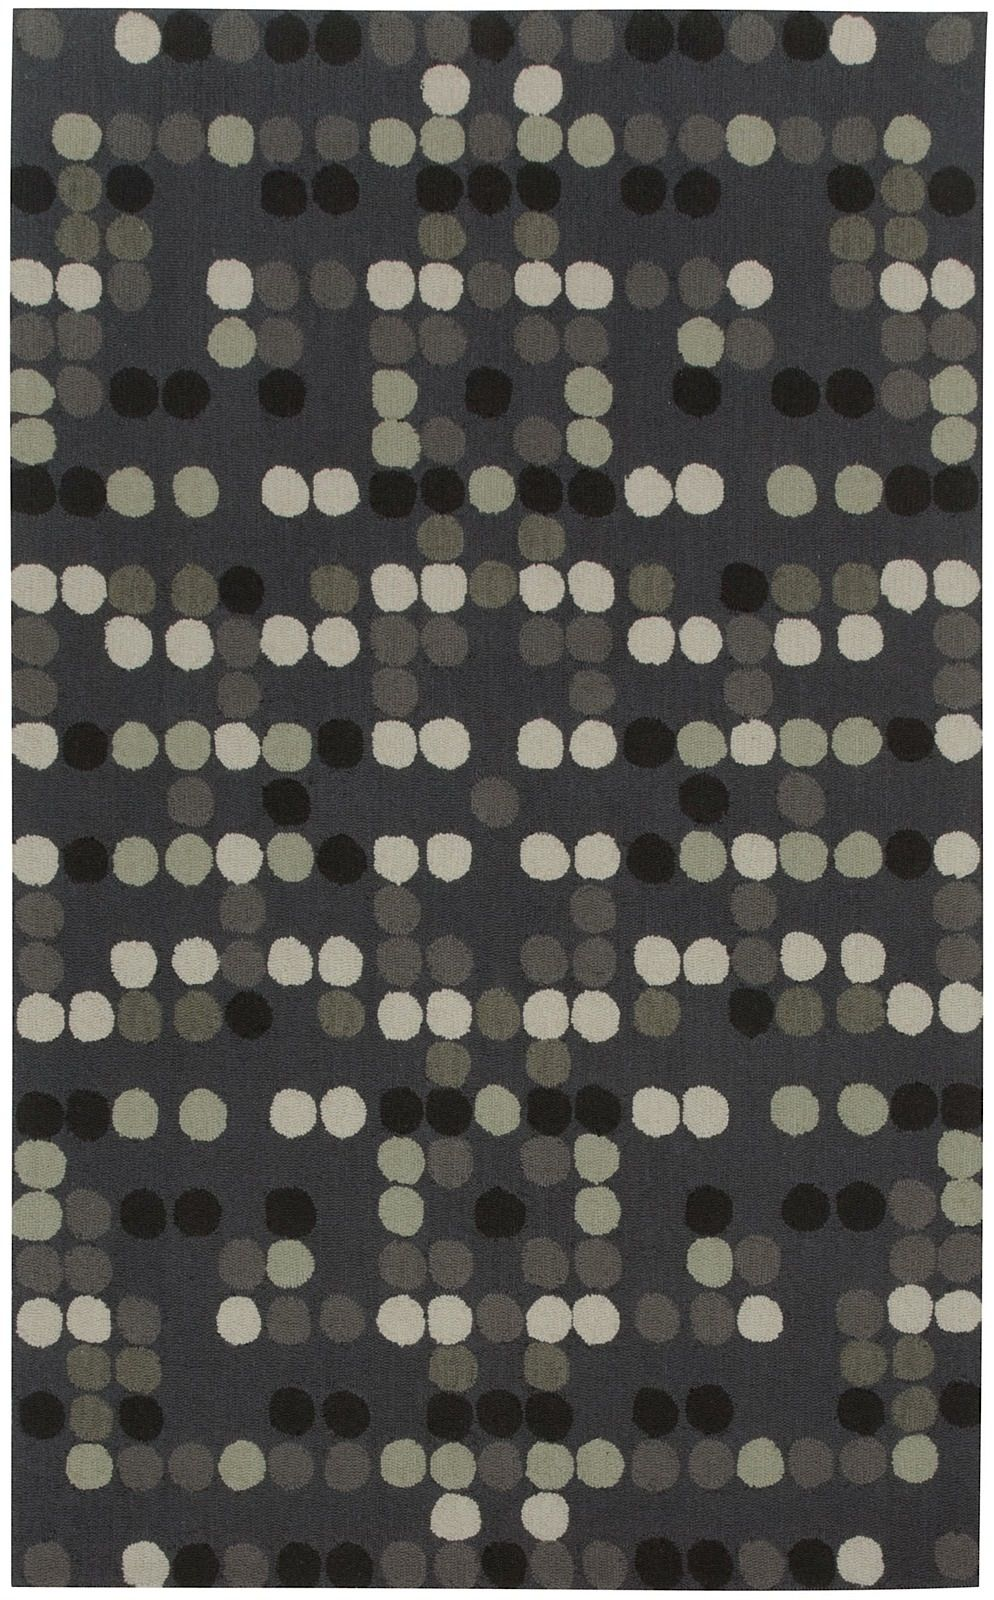 capel charcoal-dot contemporary area rug collection